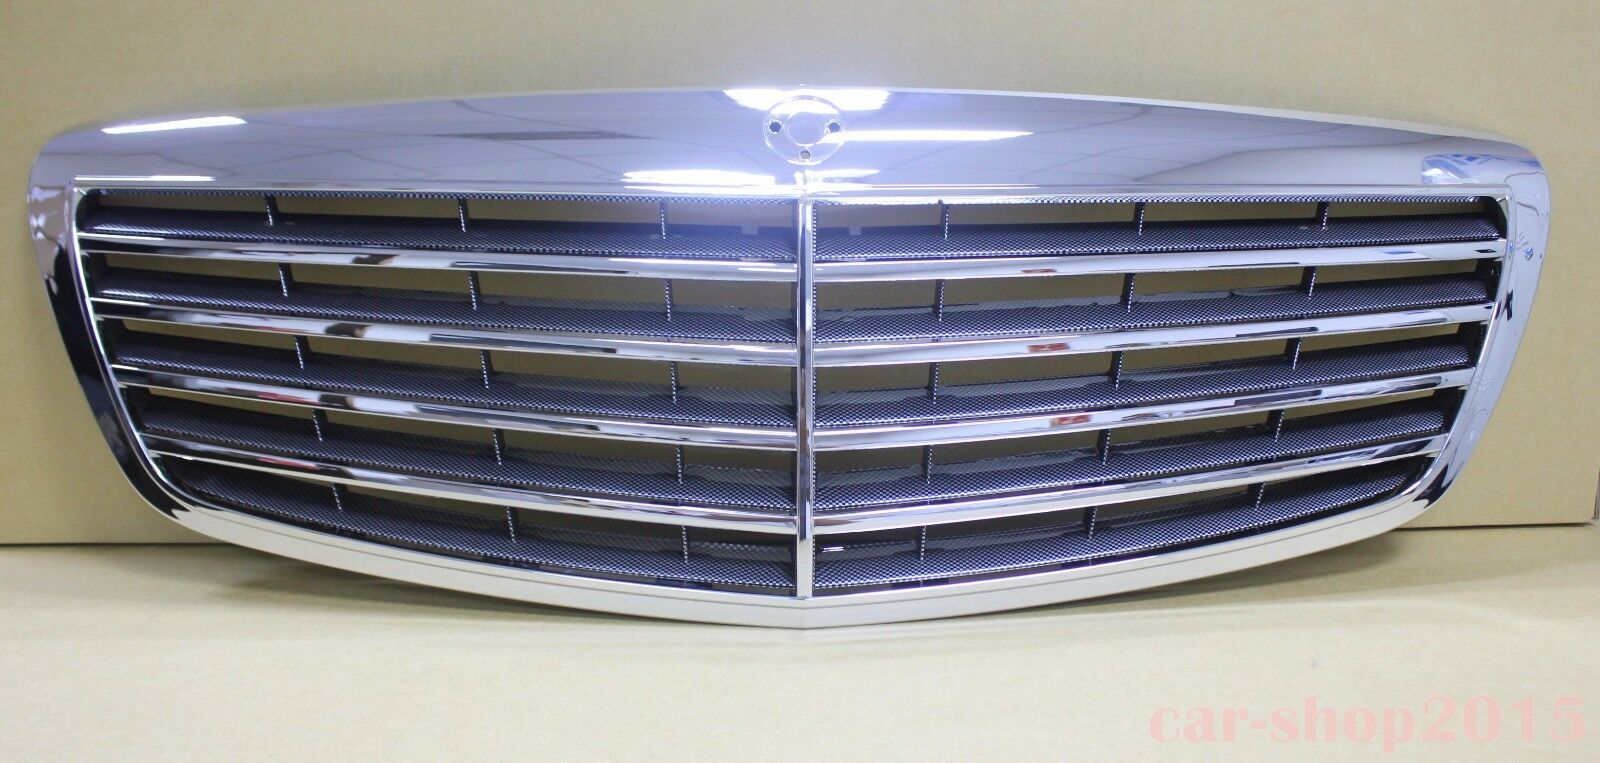 07 09 front grille mercedes benz s class w221 s550 s600 for Mercedes benz grille